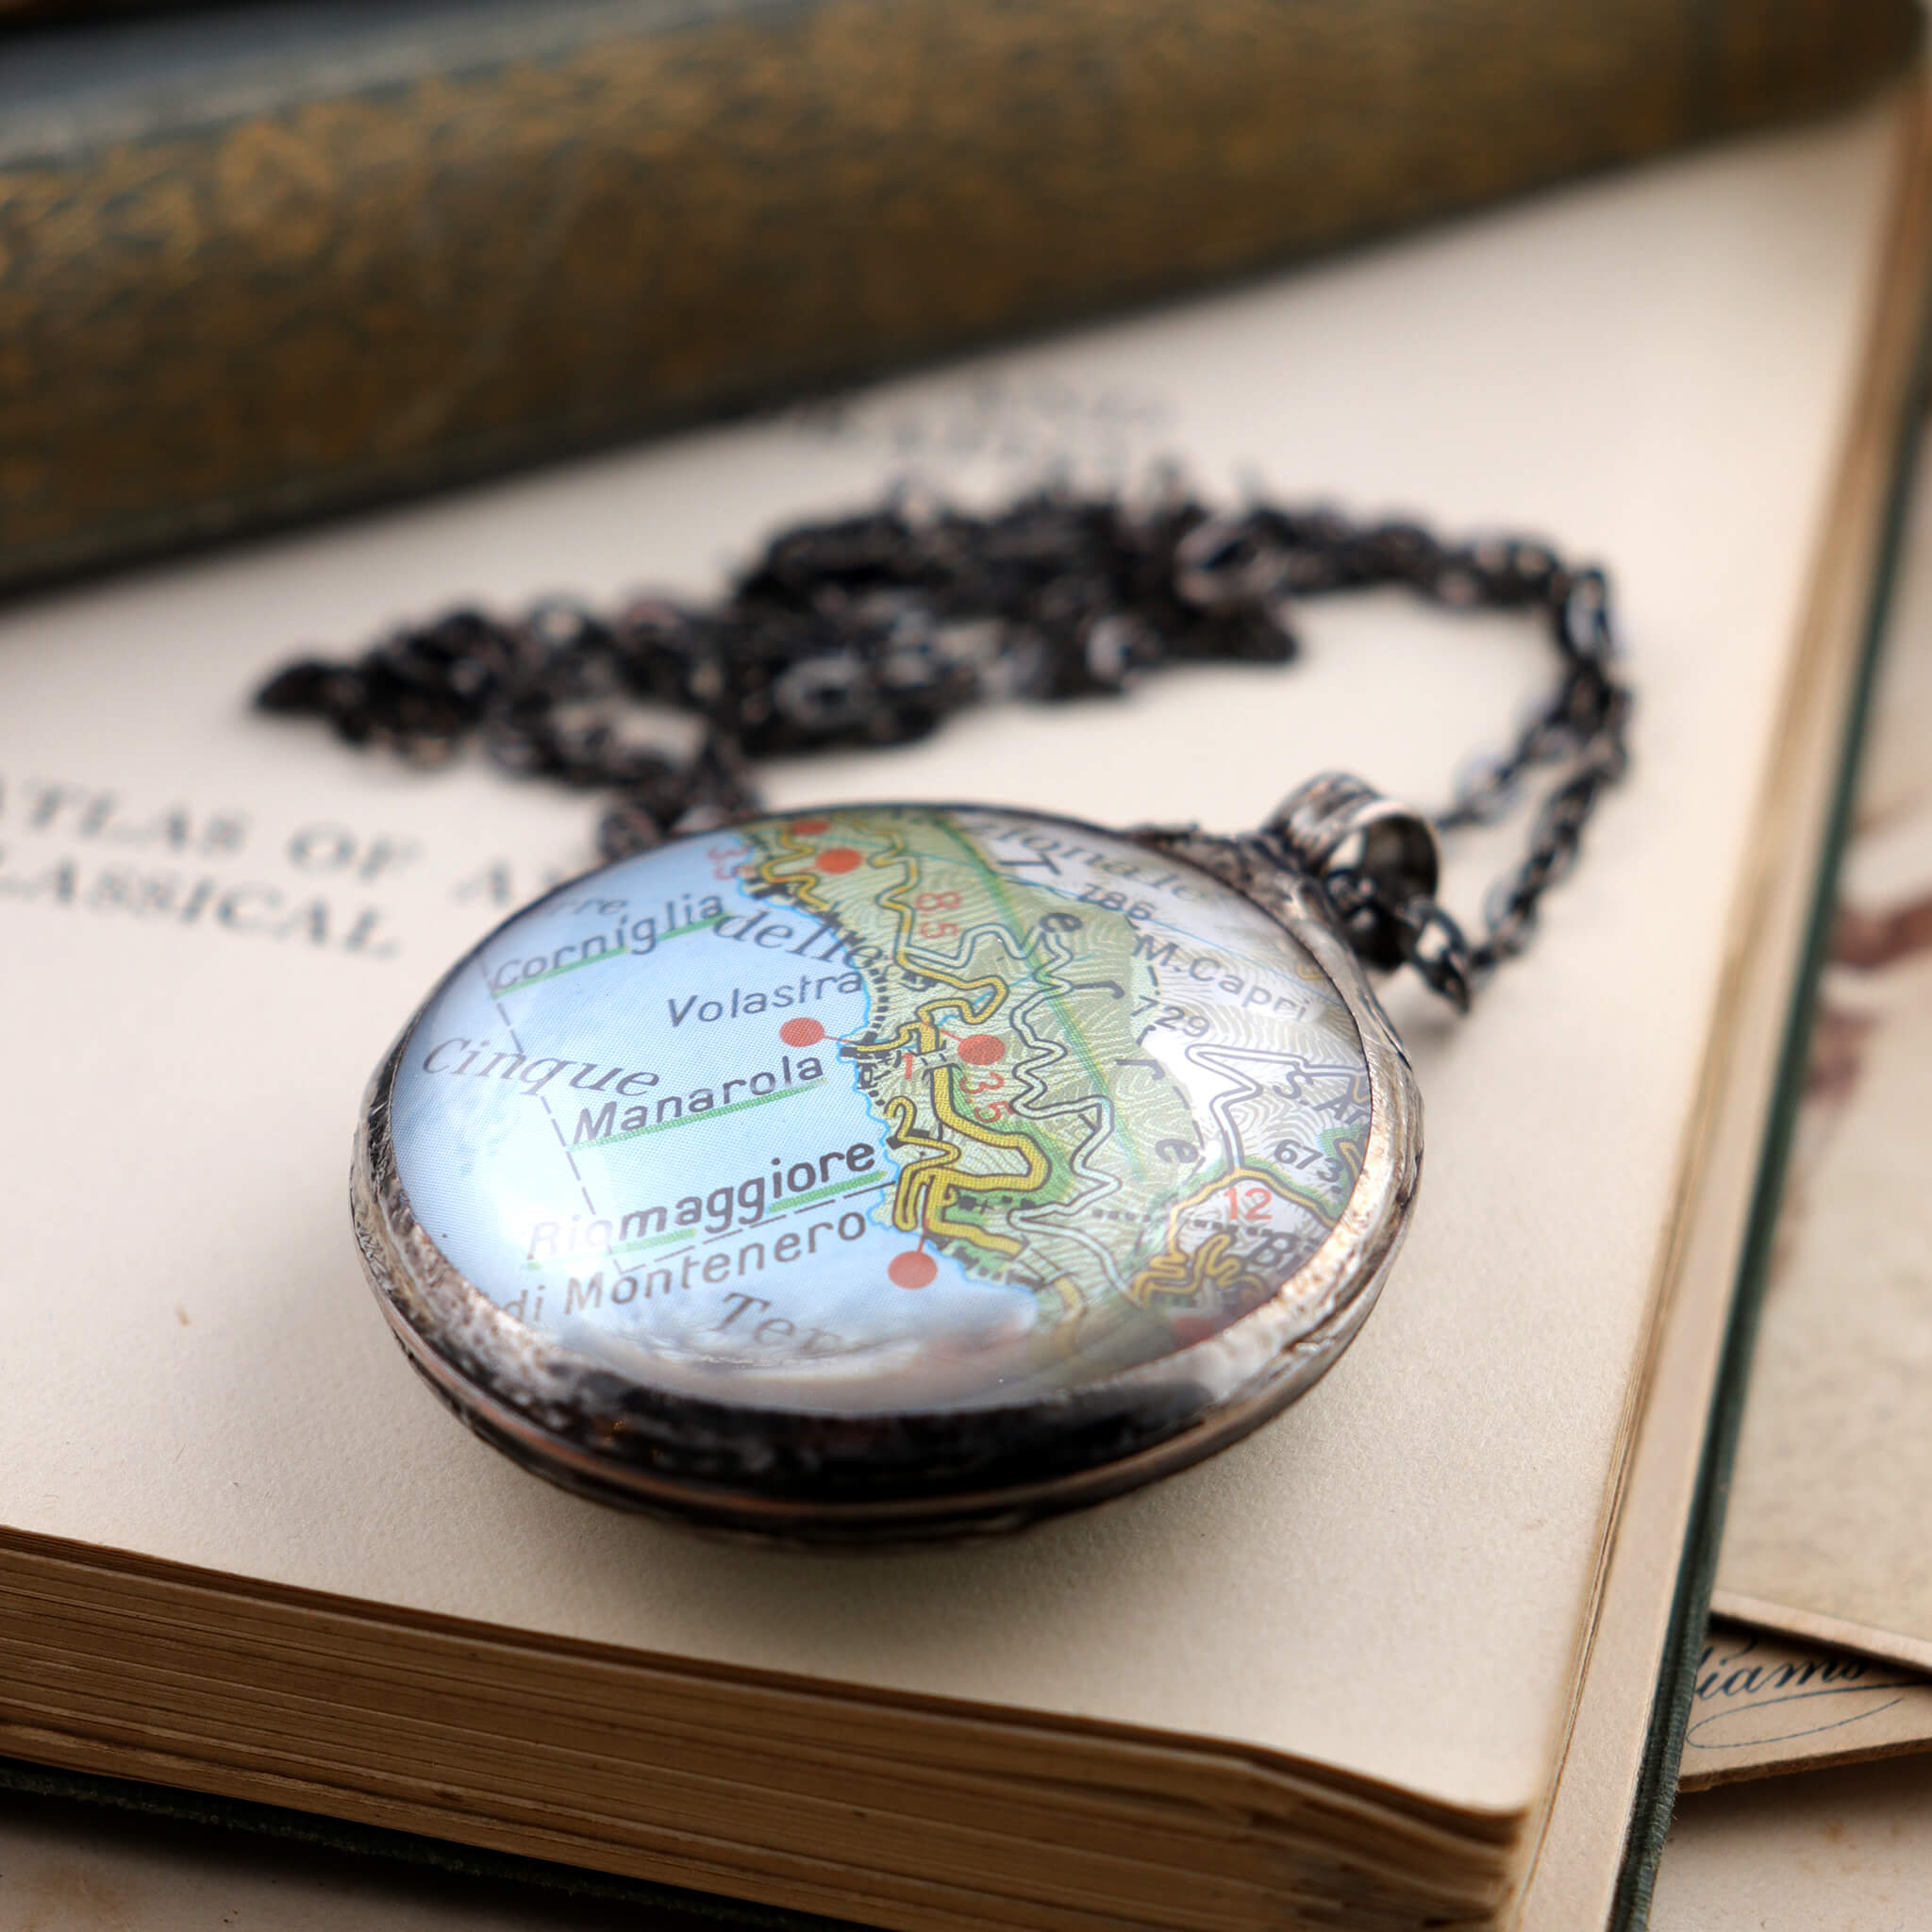 Riomaggiore map framed into Tiffany style statement necklace lying on a book